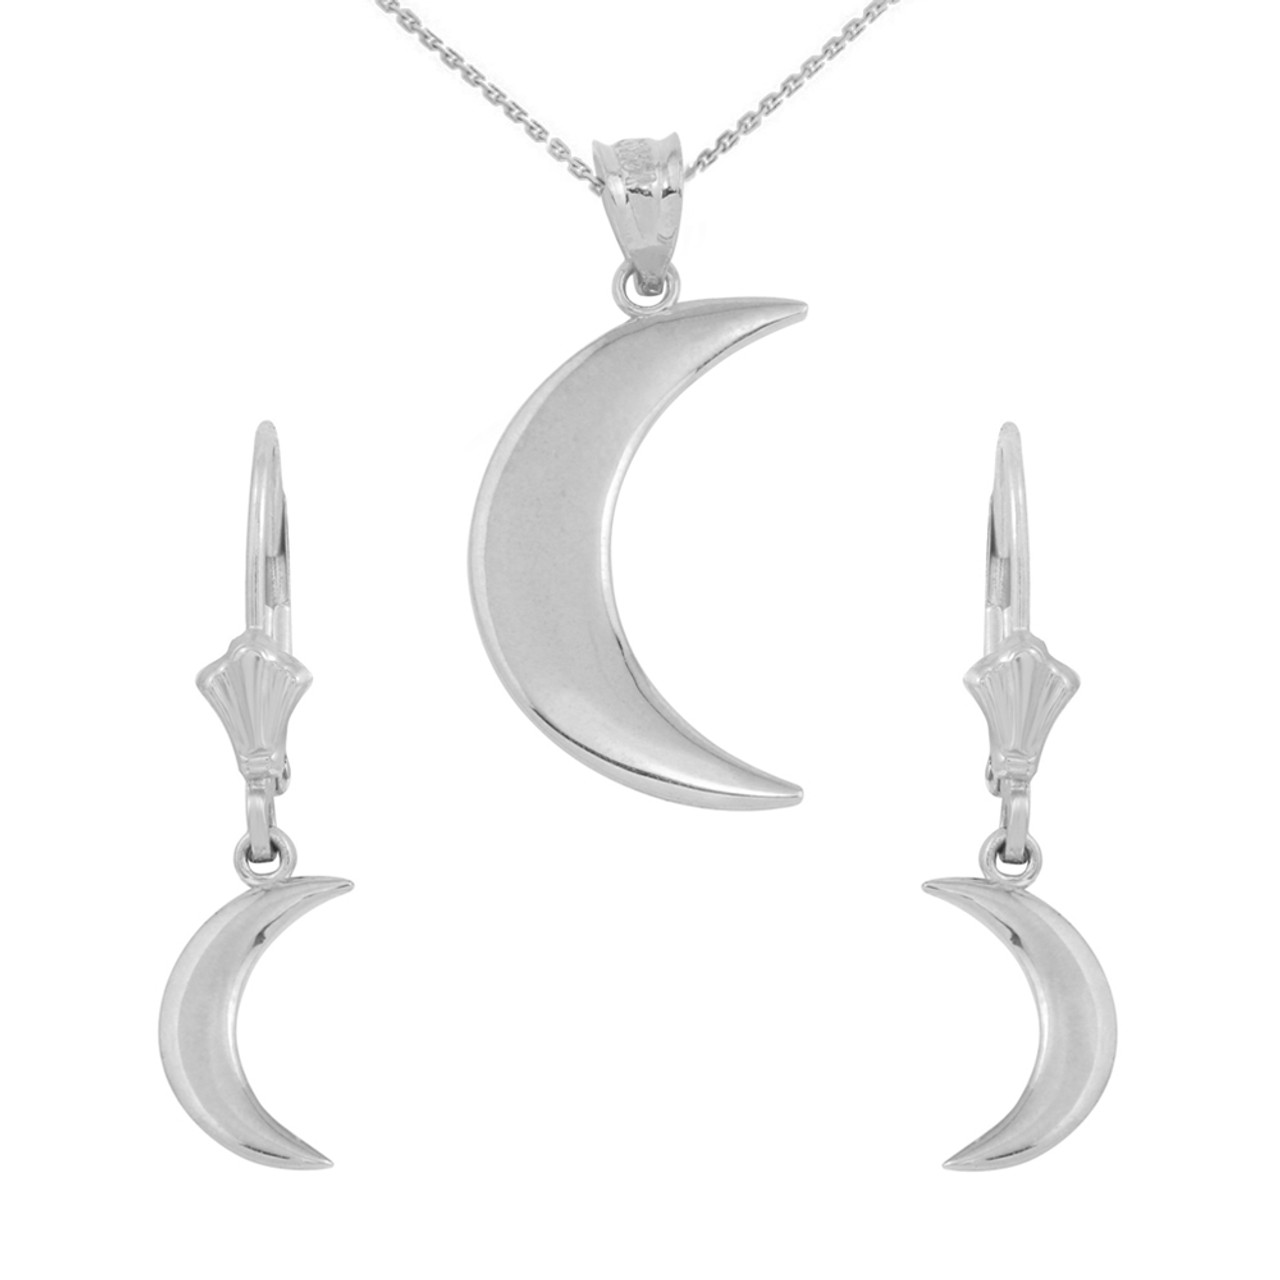 Sterling silver crescent moon pendant necklace earring set aloadofball Gallery